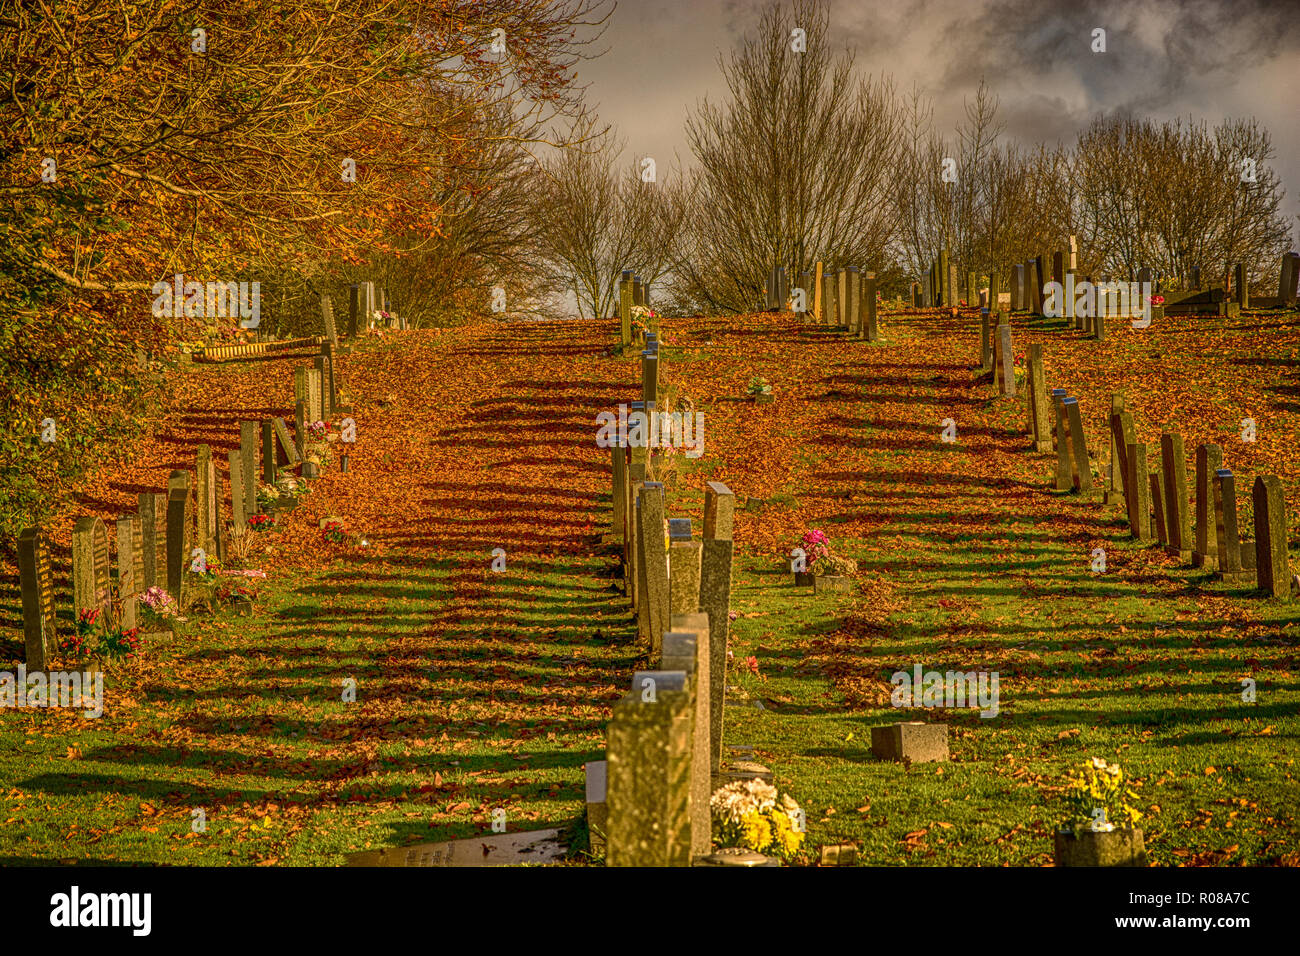 Forever Autumn. An autumnal image taken at a cemetery with the early morning sun casting long shadows. - Stock Image